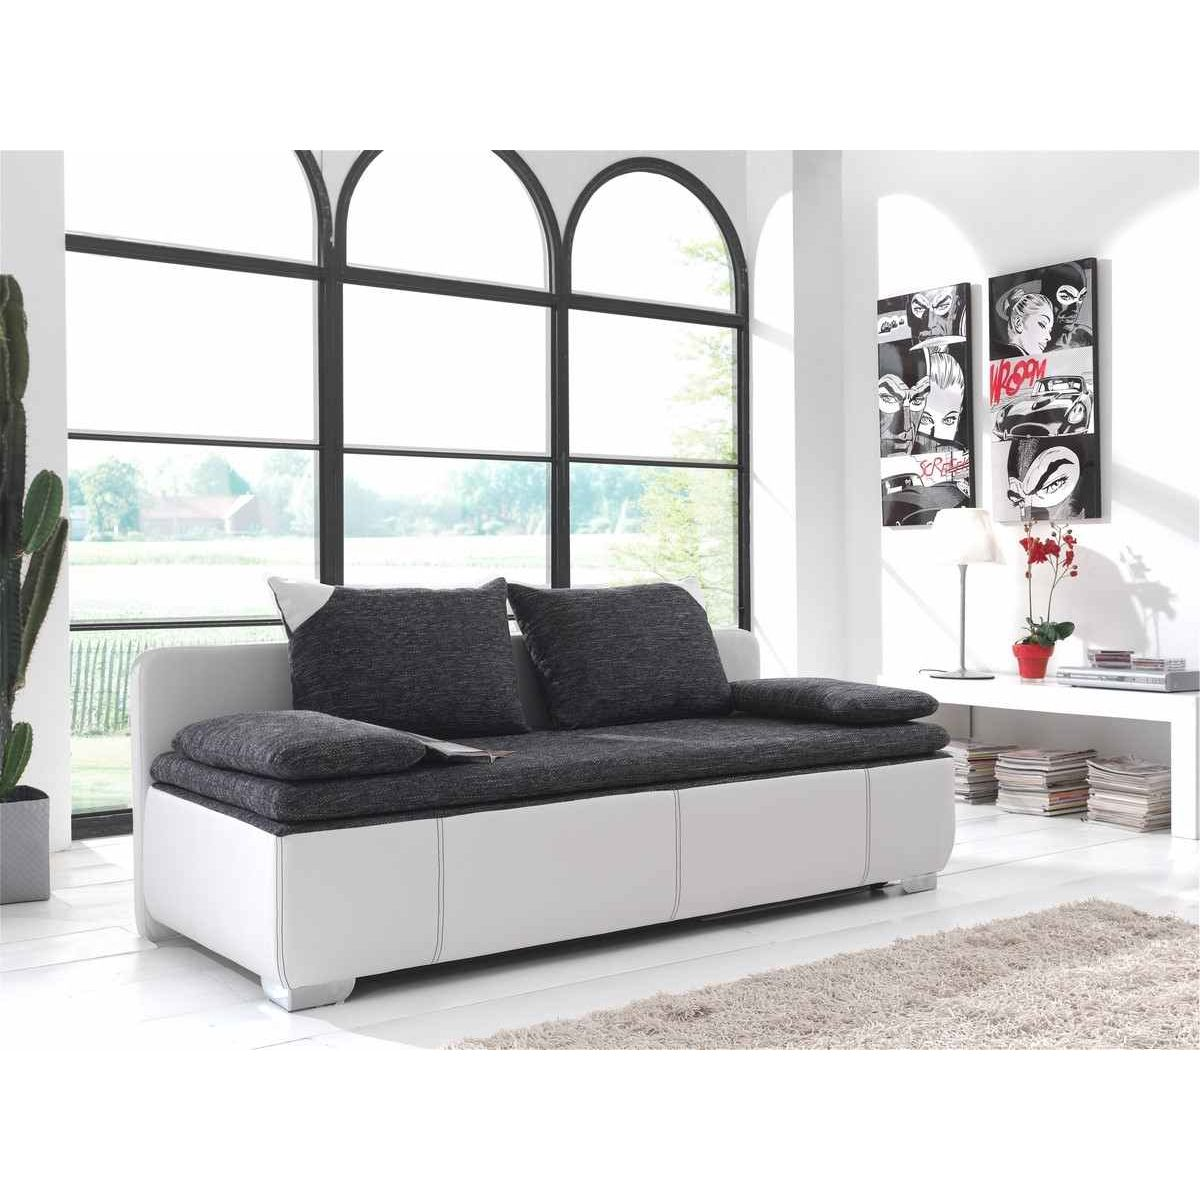 Deco in paris 2 canape 3 places convertible noir et blanc willy willy noir - Canape 3 places blanc ...